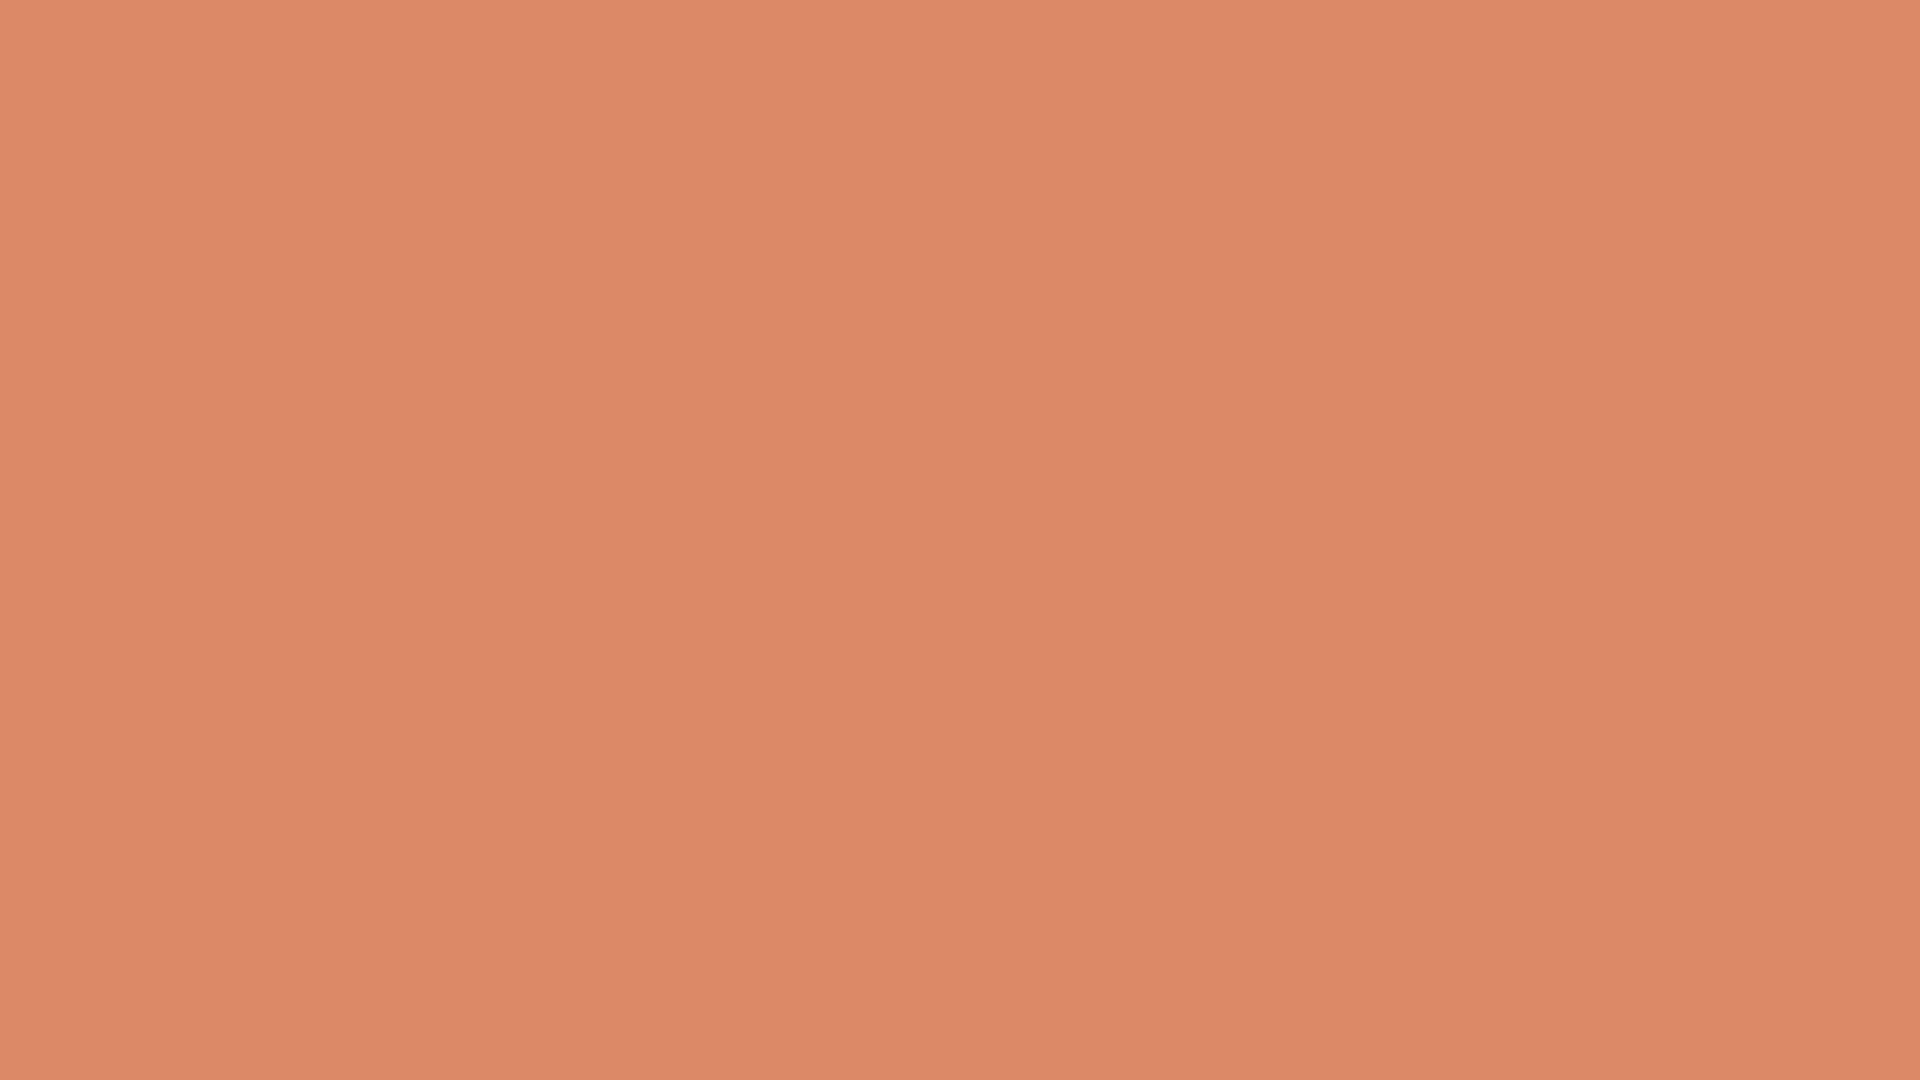 1920x1080 Copper Crayola Solid Color Background